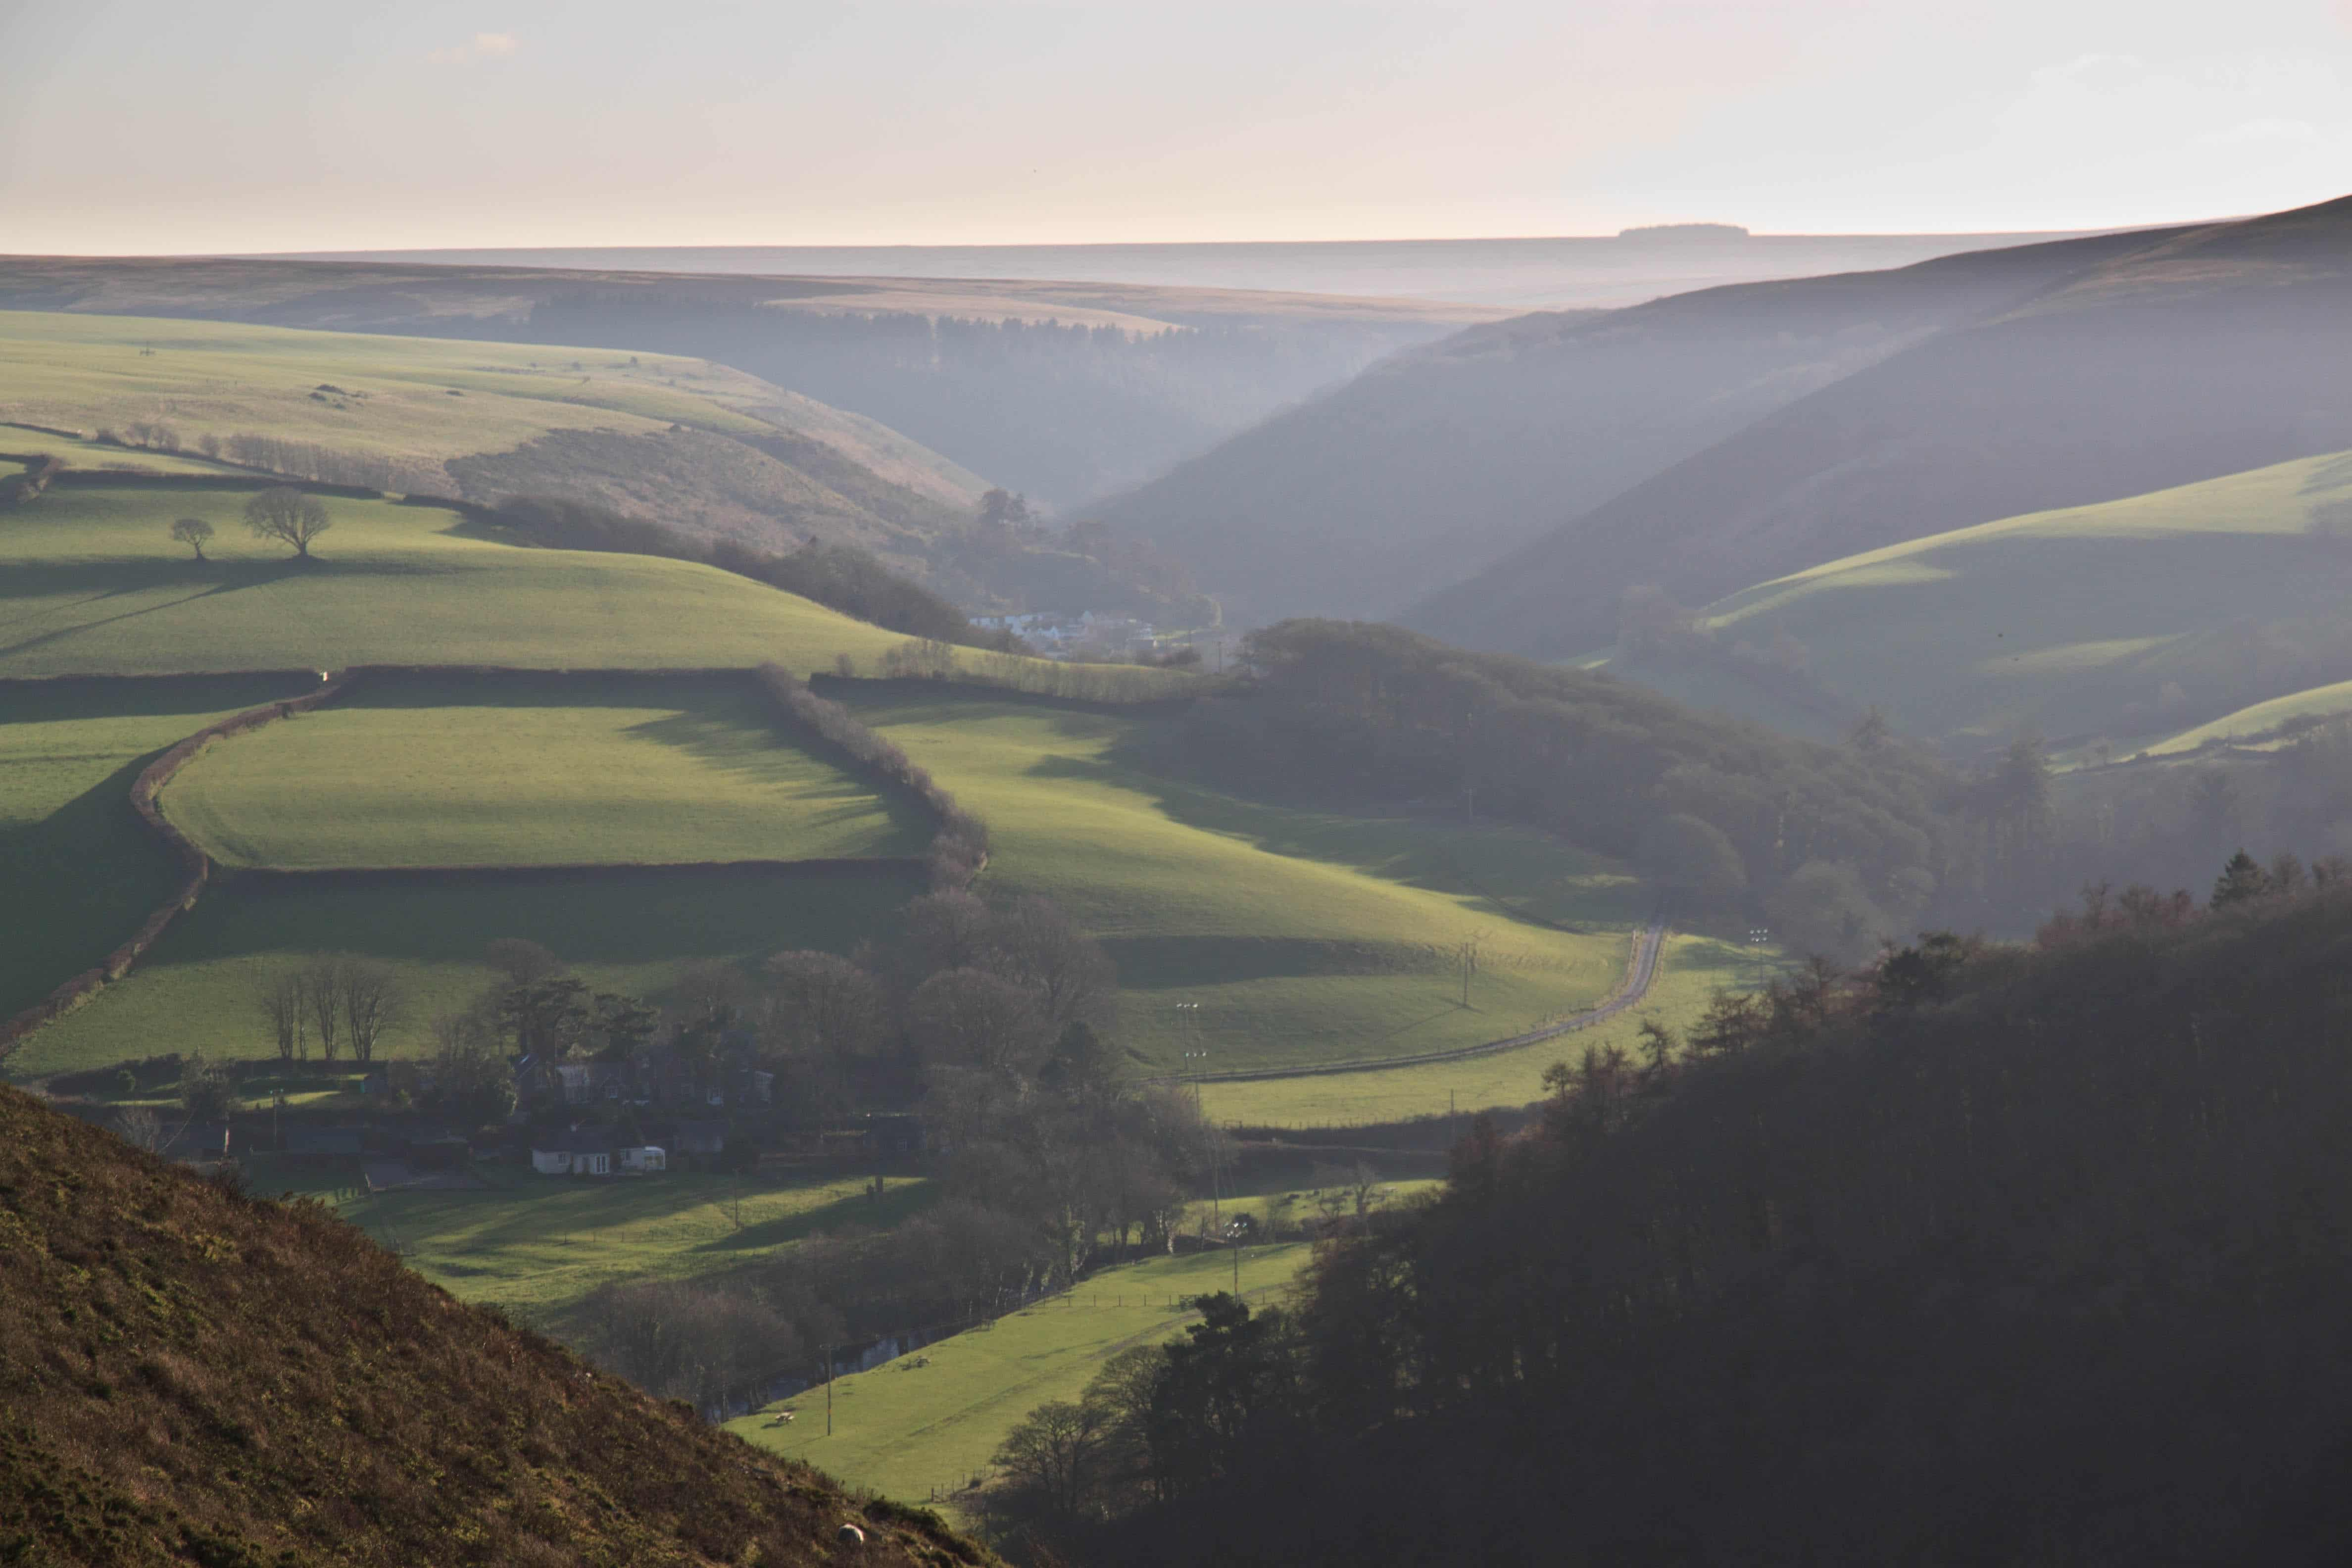 Fields and shadows  near Brendon, Exmoor. December 2014